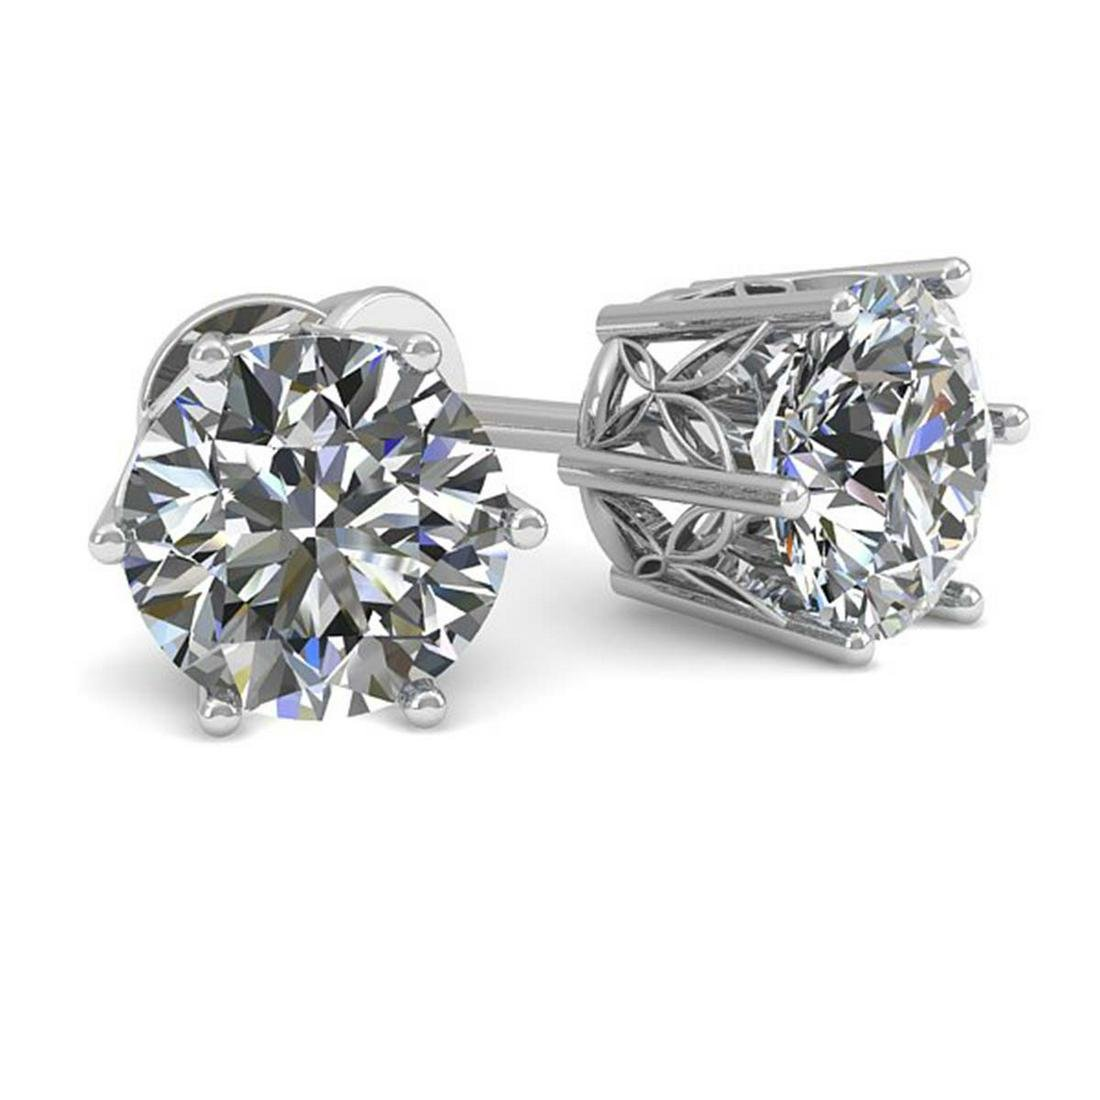 1.0 ctw VS/SI Diamond Stud Art Deco Earrings 14K White